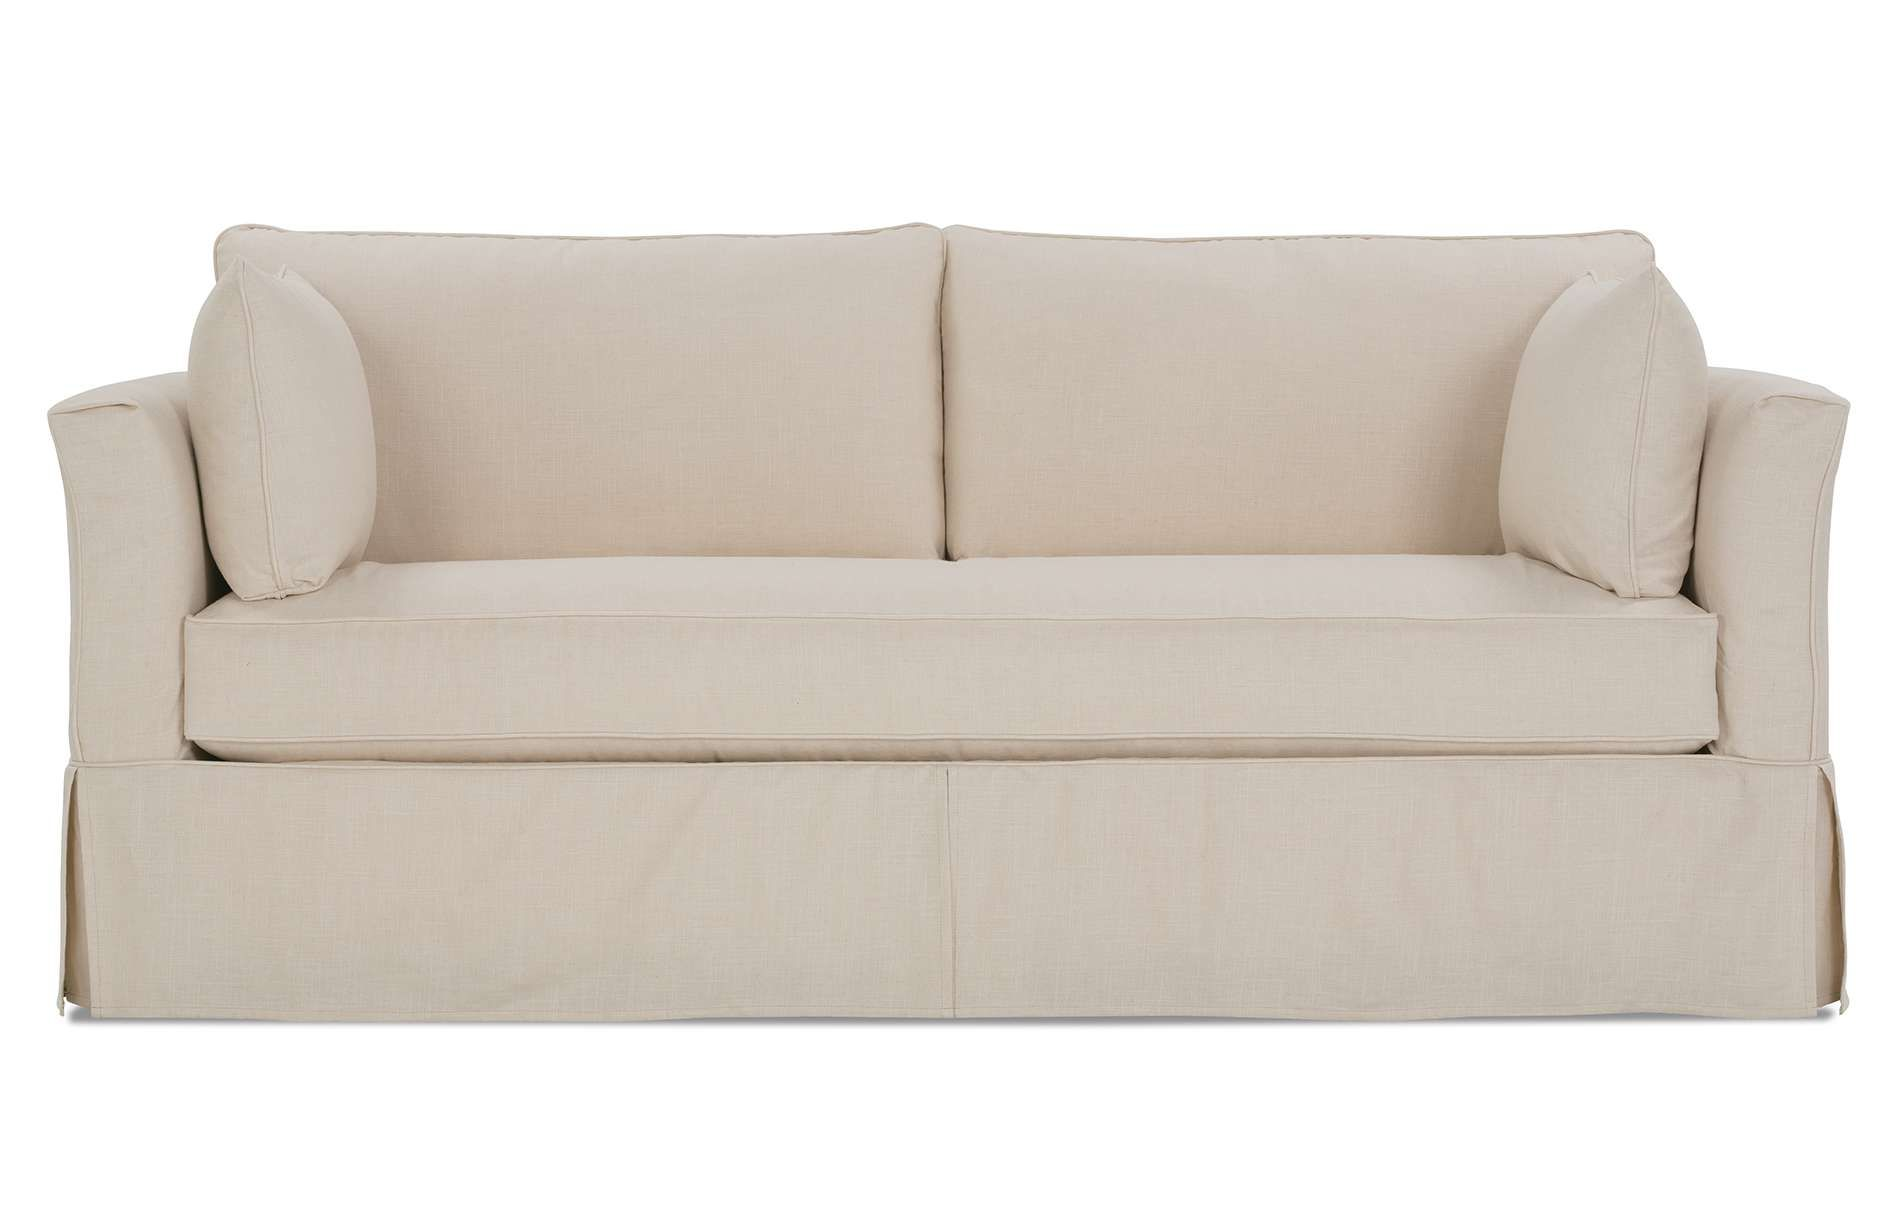 Darby Bench Seat Rowe Furniture